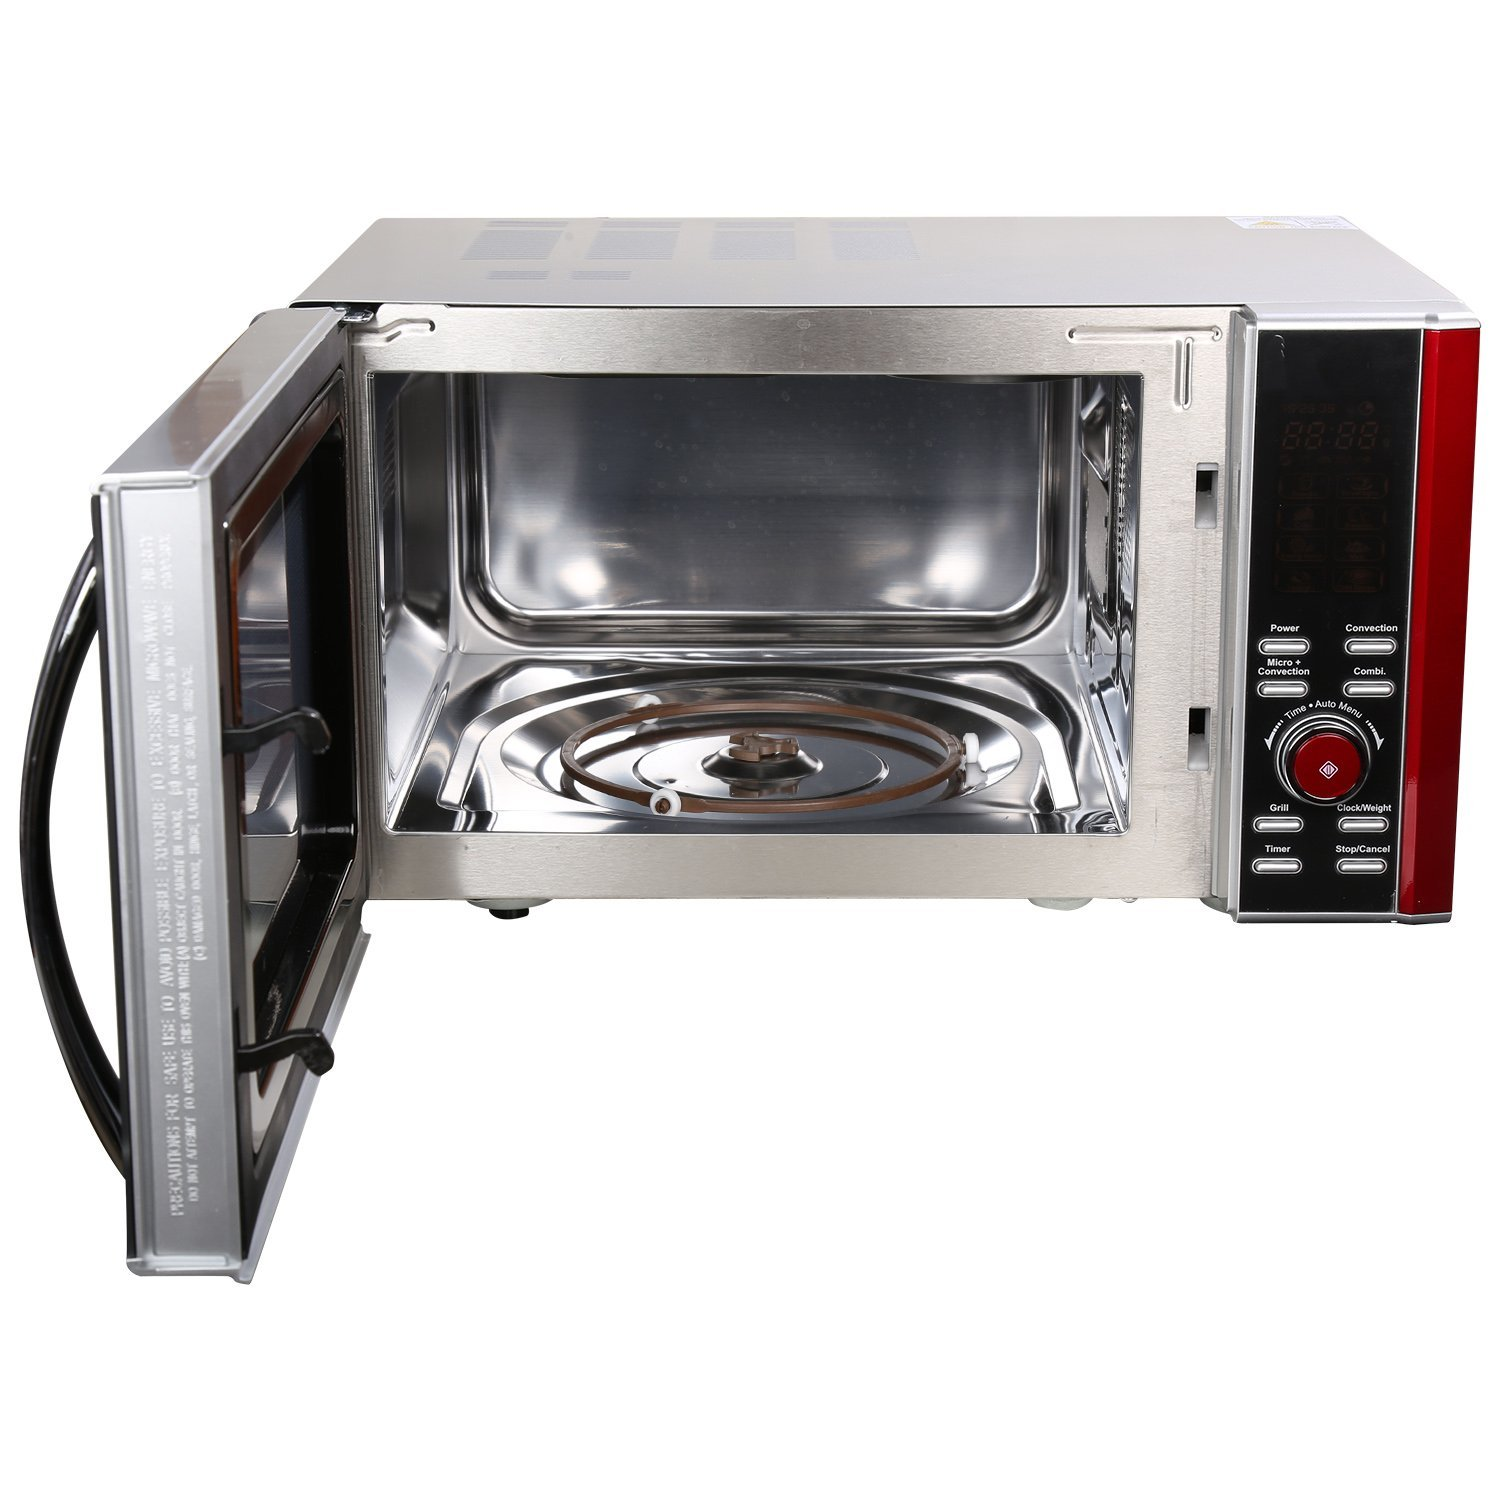 Kenstar Silver Microwave Oven